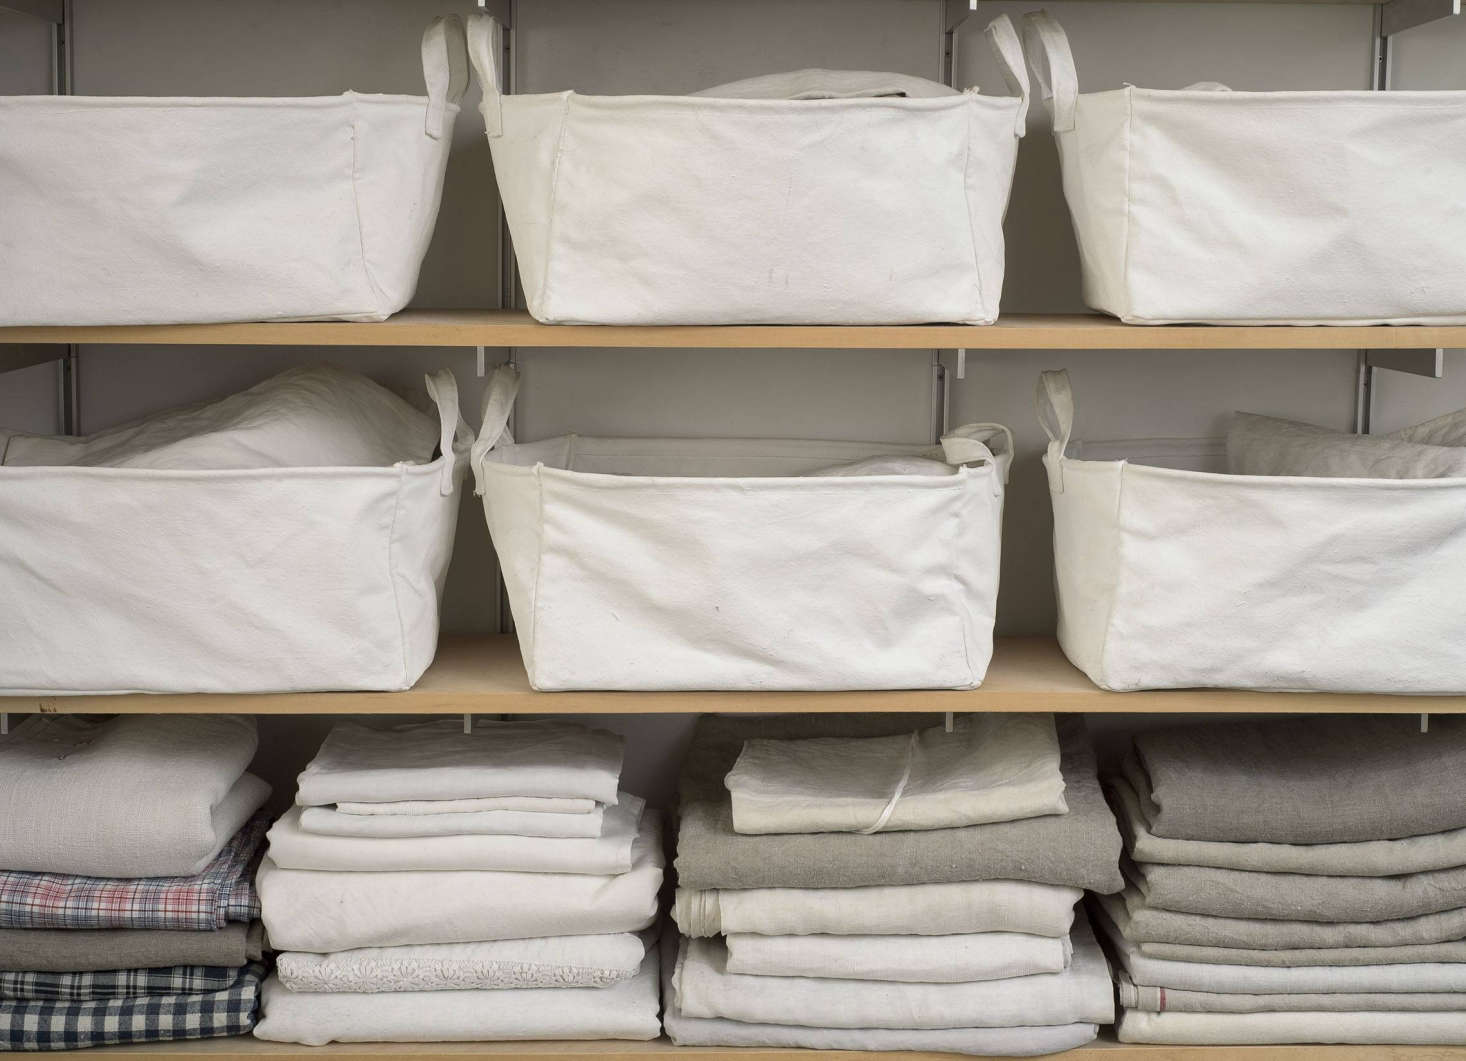 Vintage linens are folded on a shelf below a row of white Serax Canvas Basketsthat holds miscellaneous odds and ends.